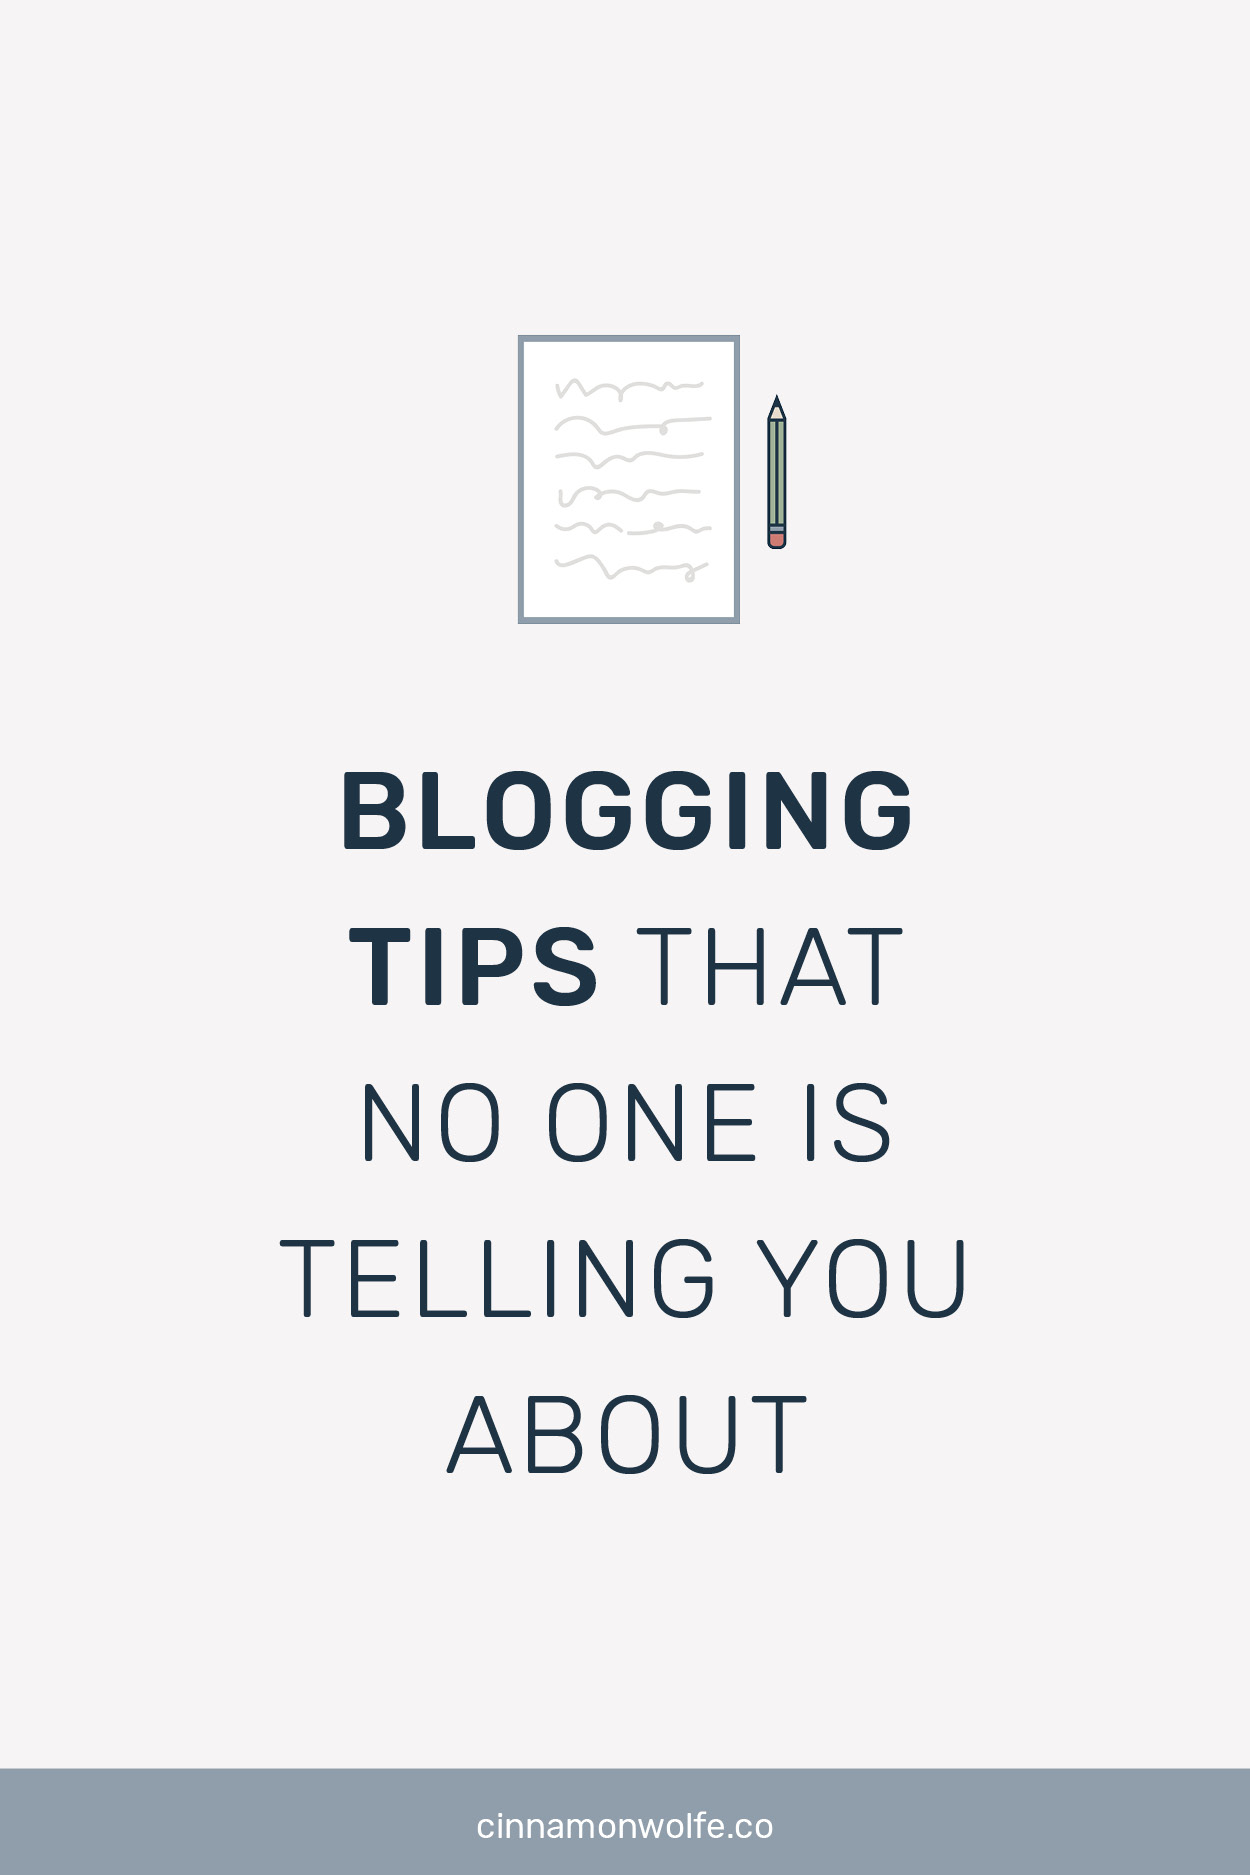 what If I told you there were some super important tips about blogging that no one is really talking about. And to top it off, these tips will actually help you elevate your blogging so that you can actually ENSURE that all of the hard work you are putting in actually pays off.   |  Cinnamon Wolfe